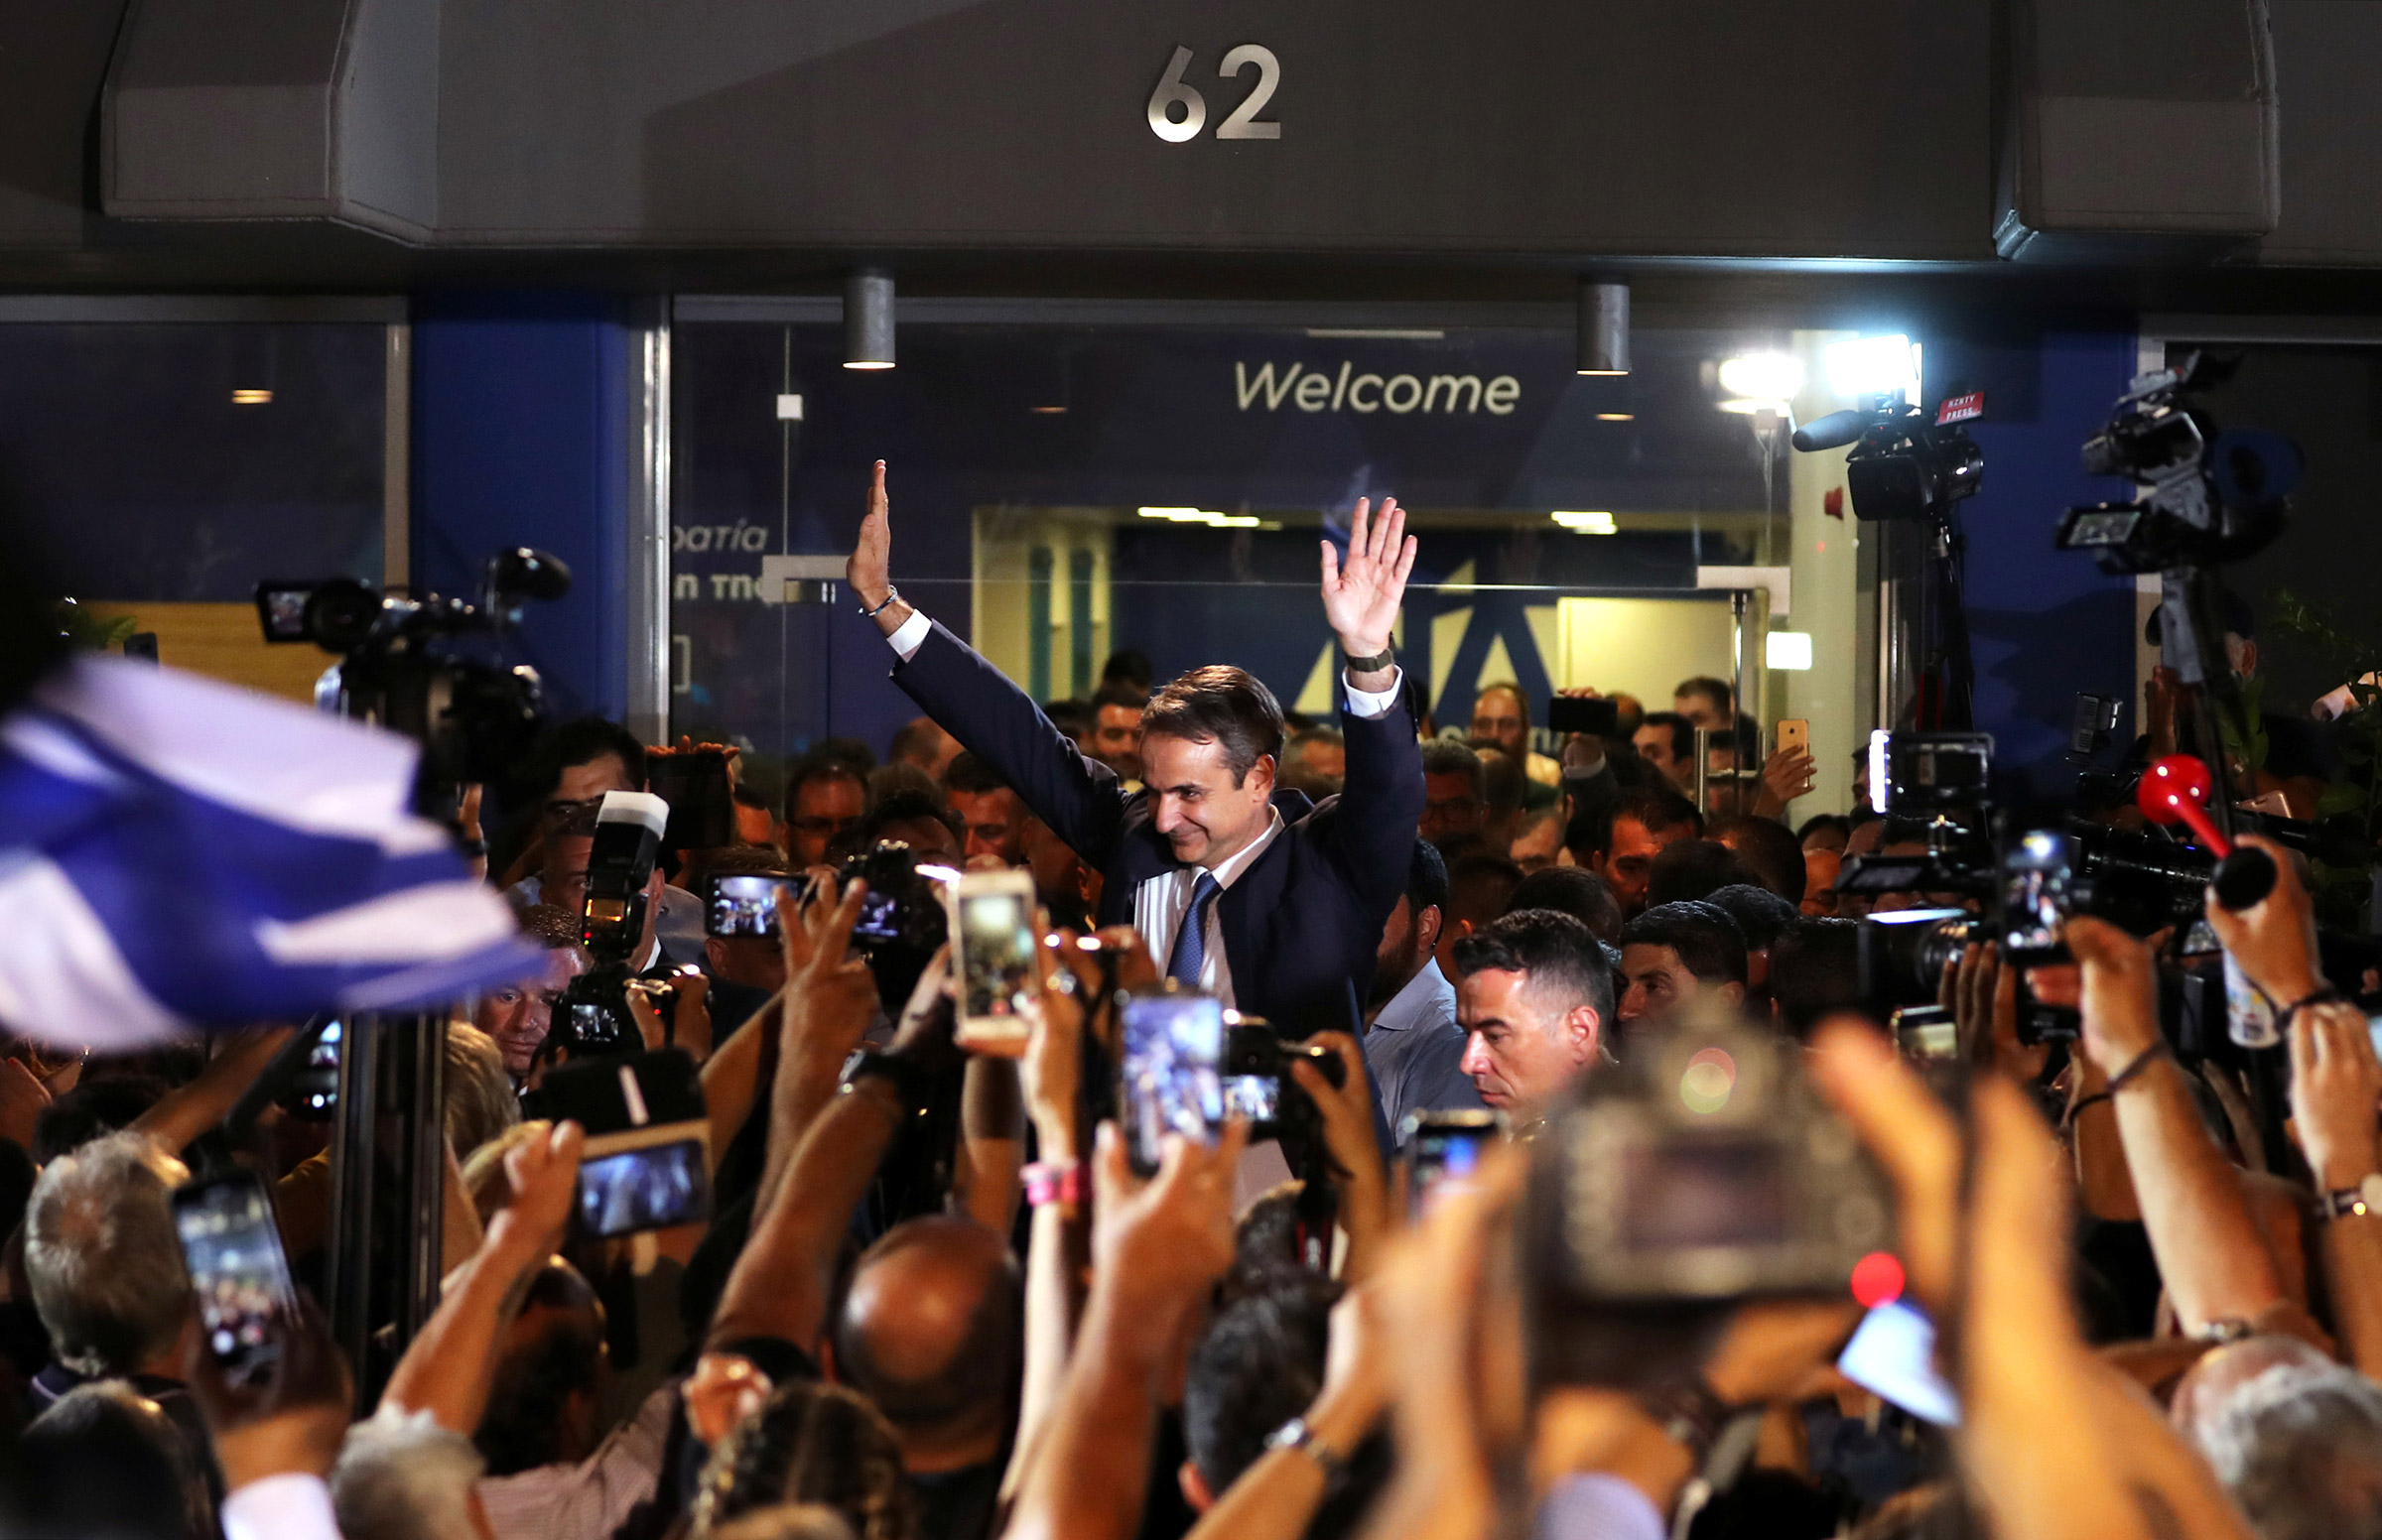 Newly-elected Prime Minister Kyriakos Mitsotakis waves as he speaks outside the New Democracy party headquarters after winning the general election on July 7 in Athens, Greece.